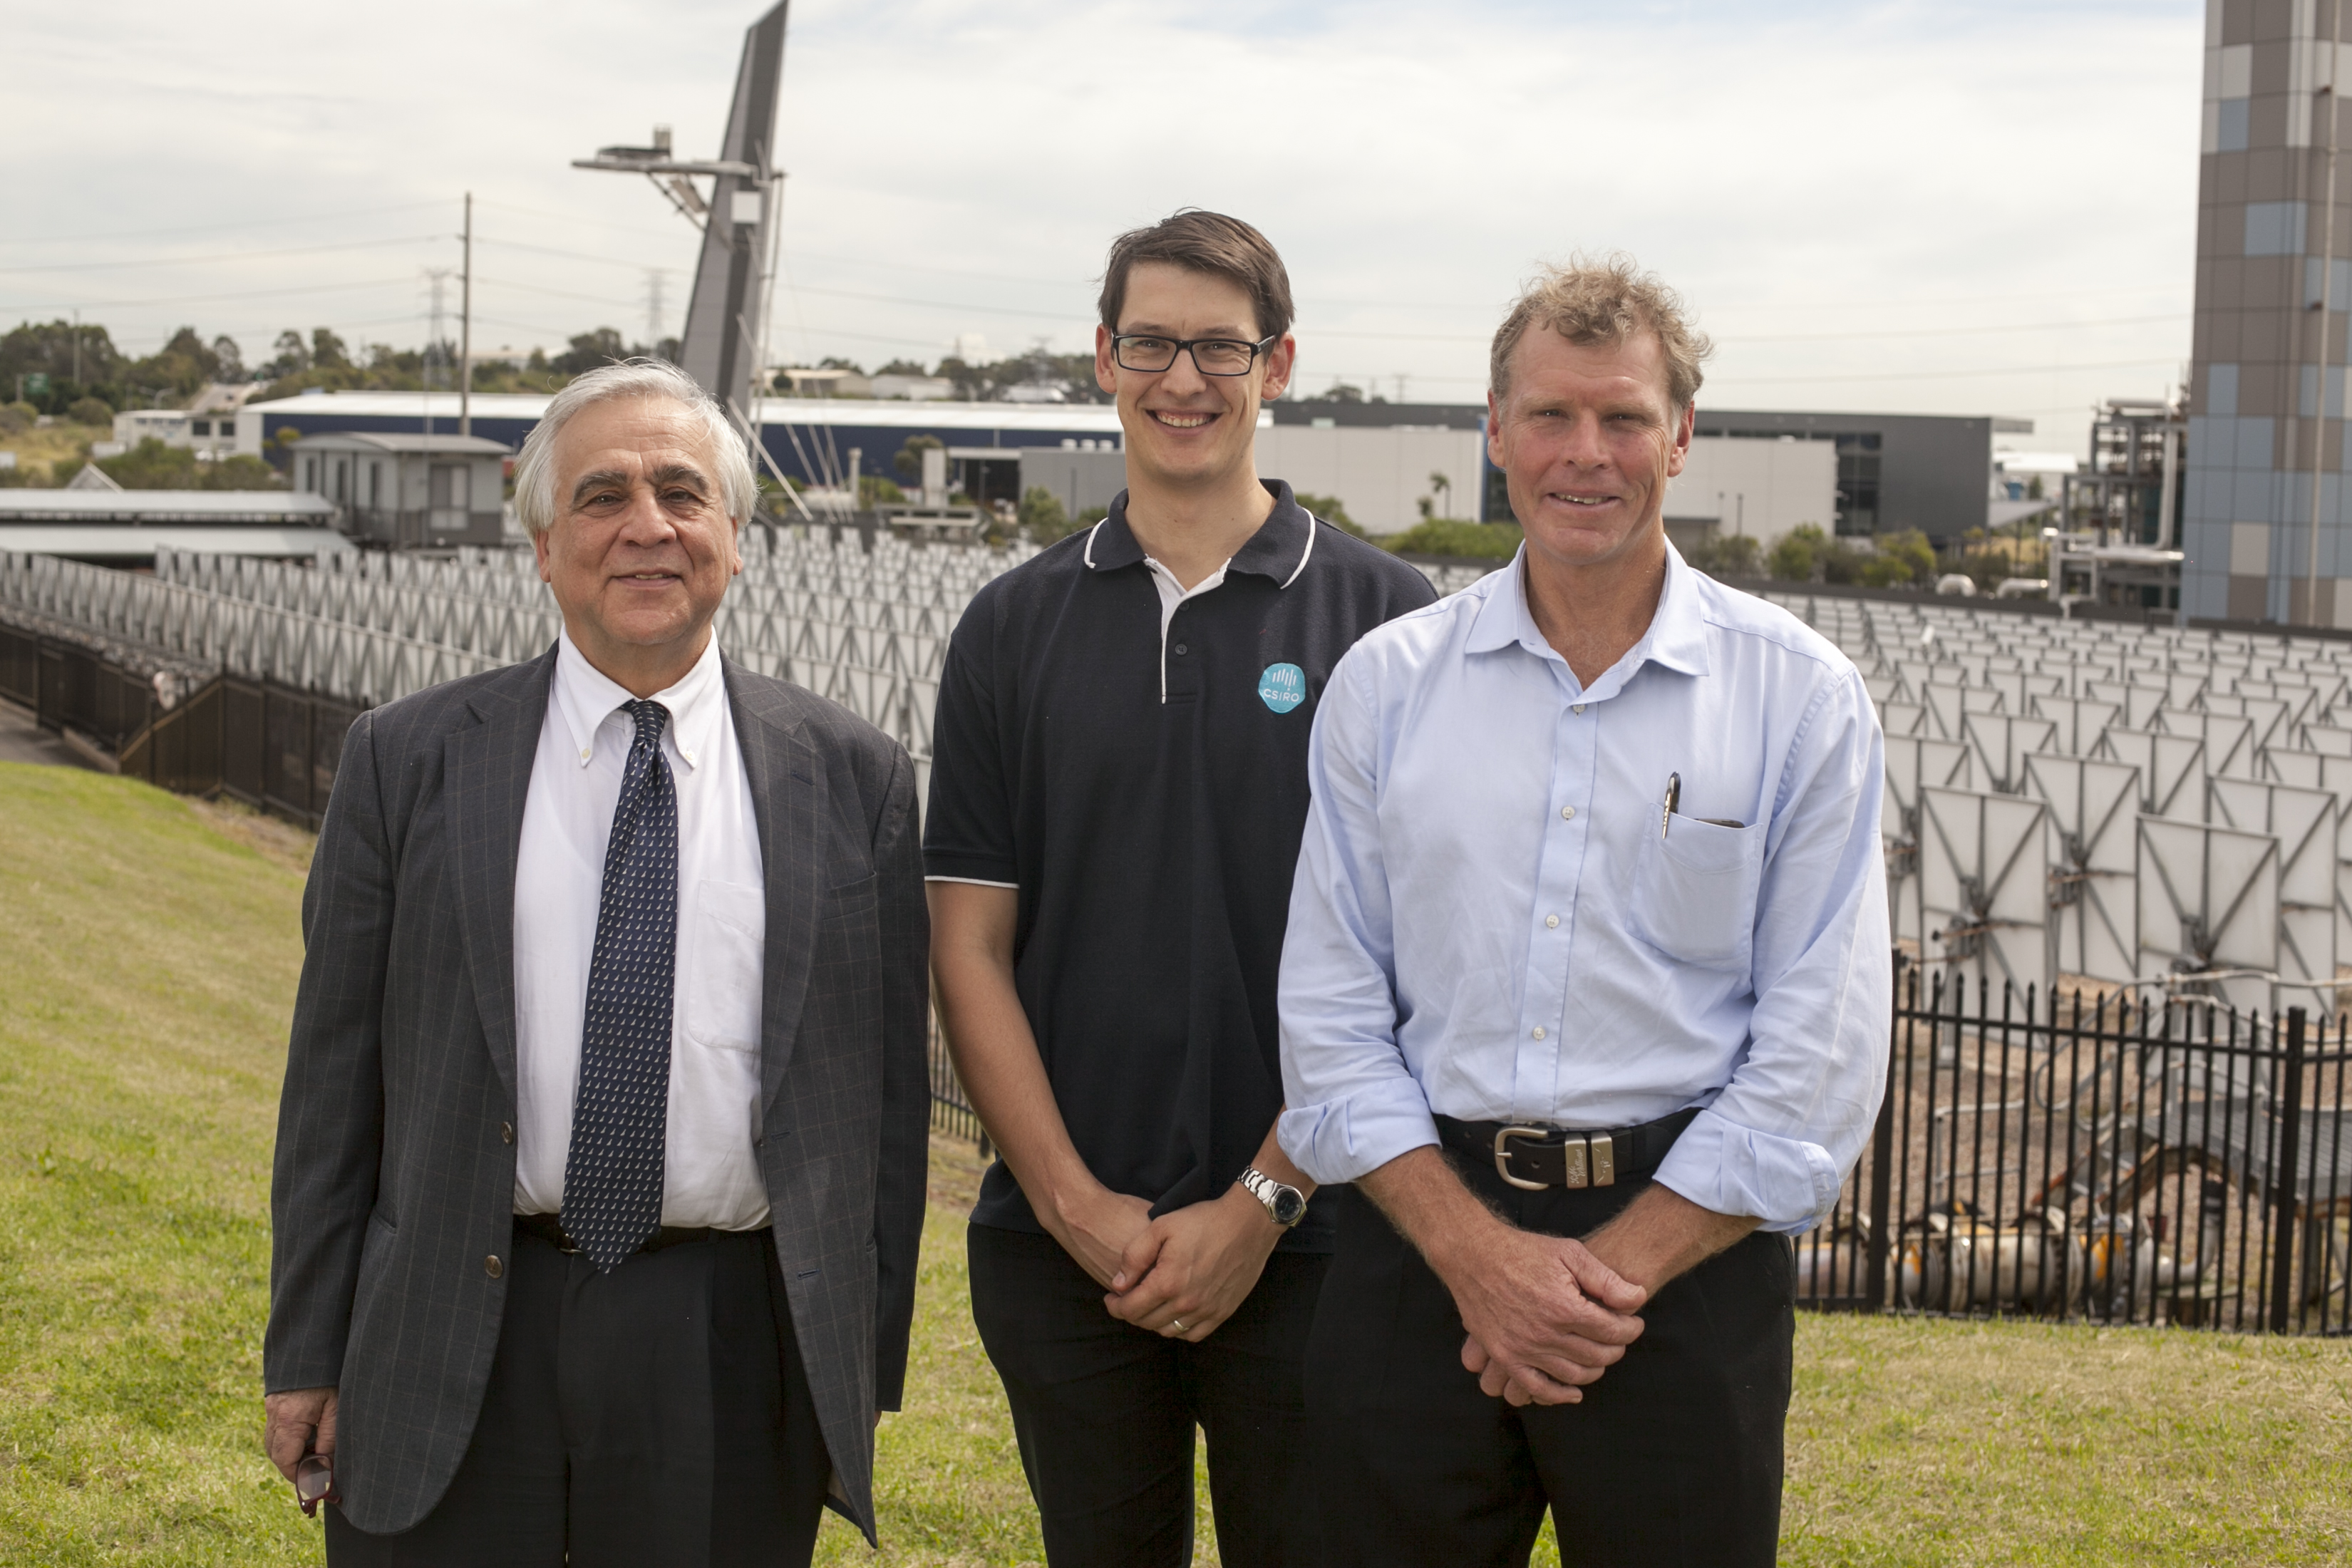 The Solar field of dreams and the dreamers. From left to right: Professor Costas Papanicolas, President of the Cyprus Institute, Mike Collins, CSIRO Mechanical Engineer, Wes Stein, CSIRO Solar Research Leader